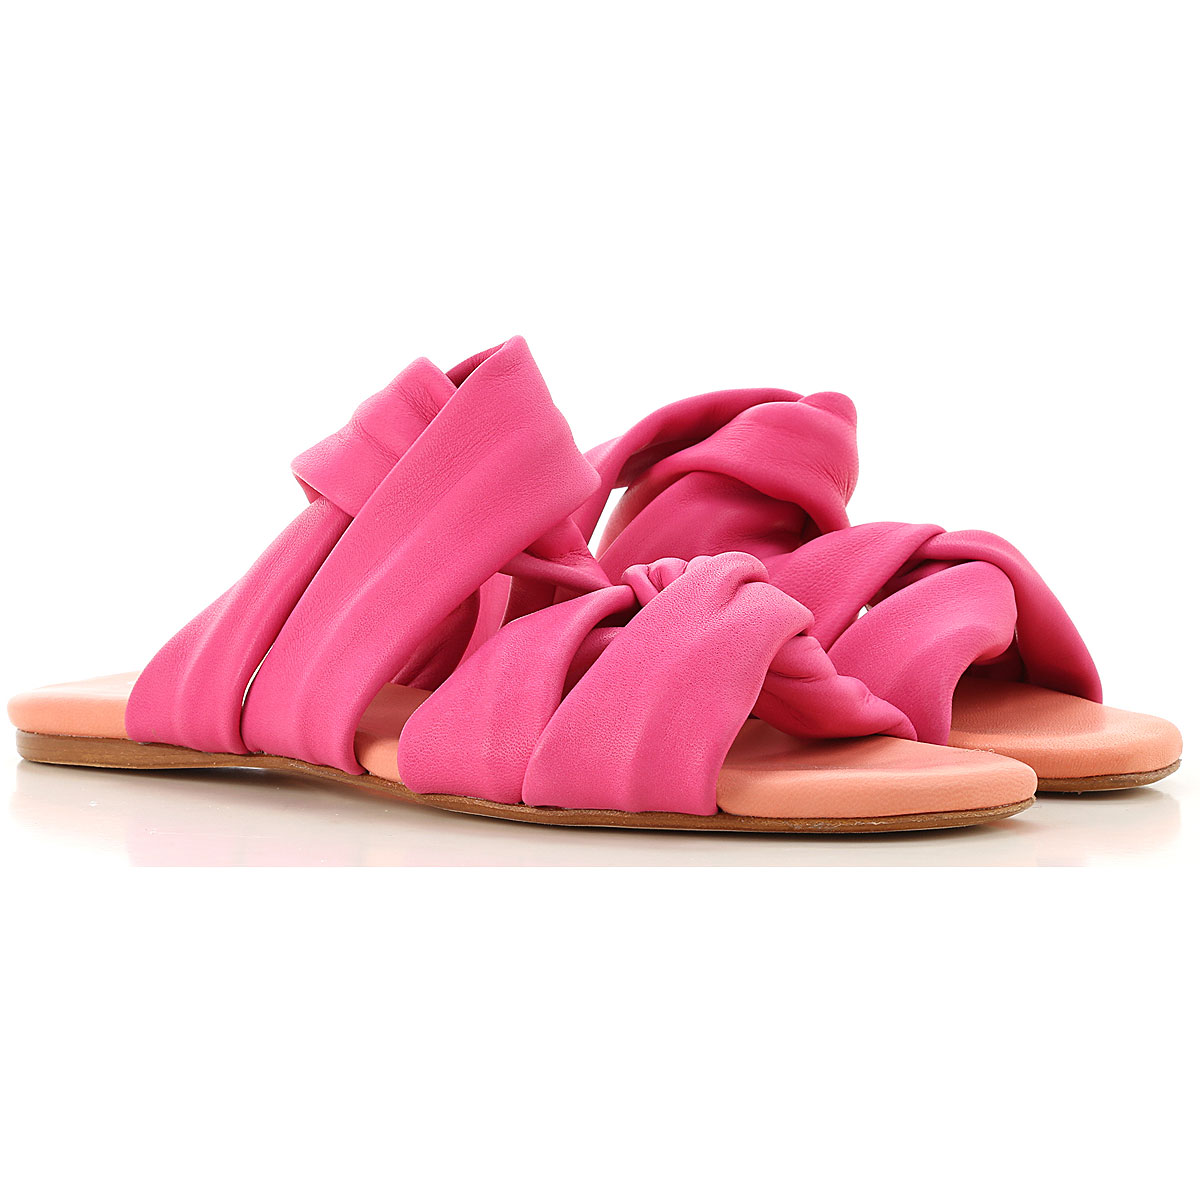 Anna Baiguera Sandals for Women On Sale in Outlet, Fuchsia, Leather, 2019, 11 6 7